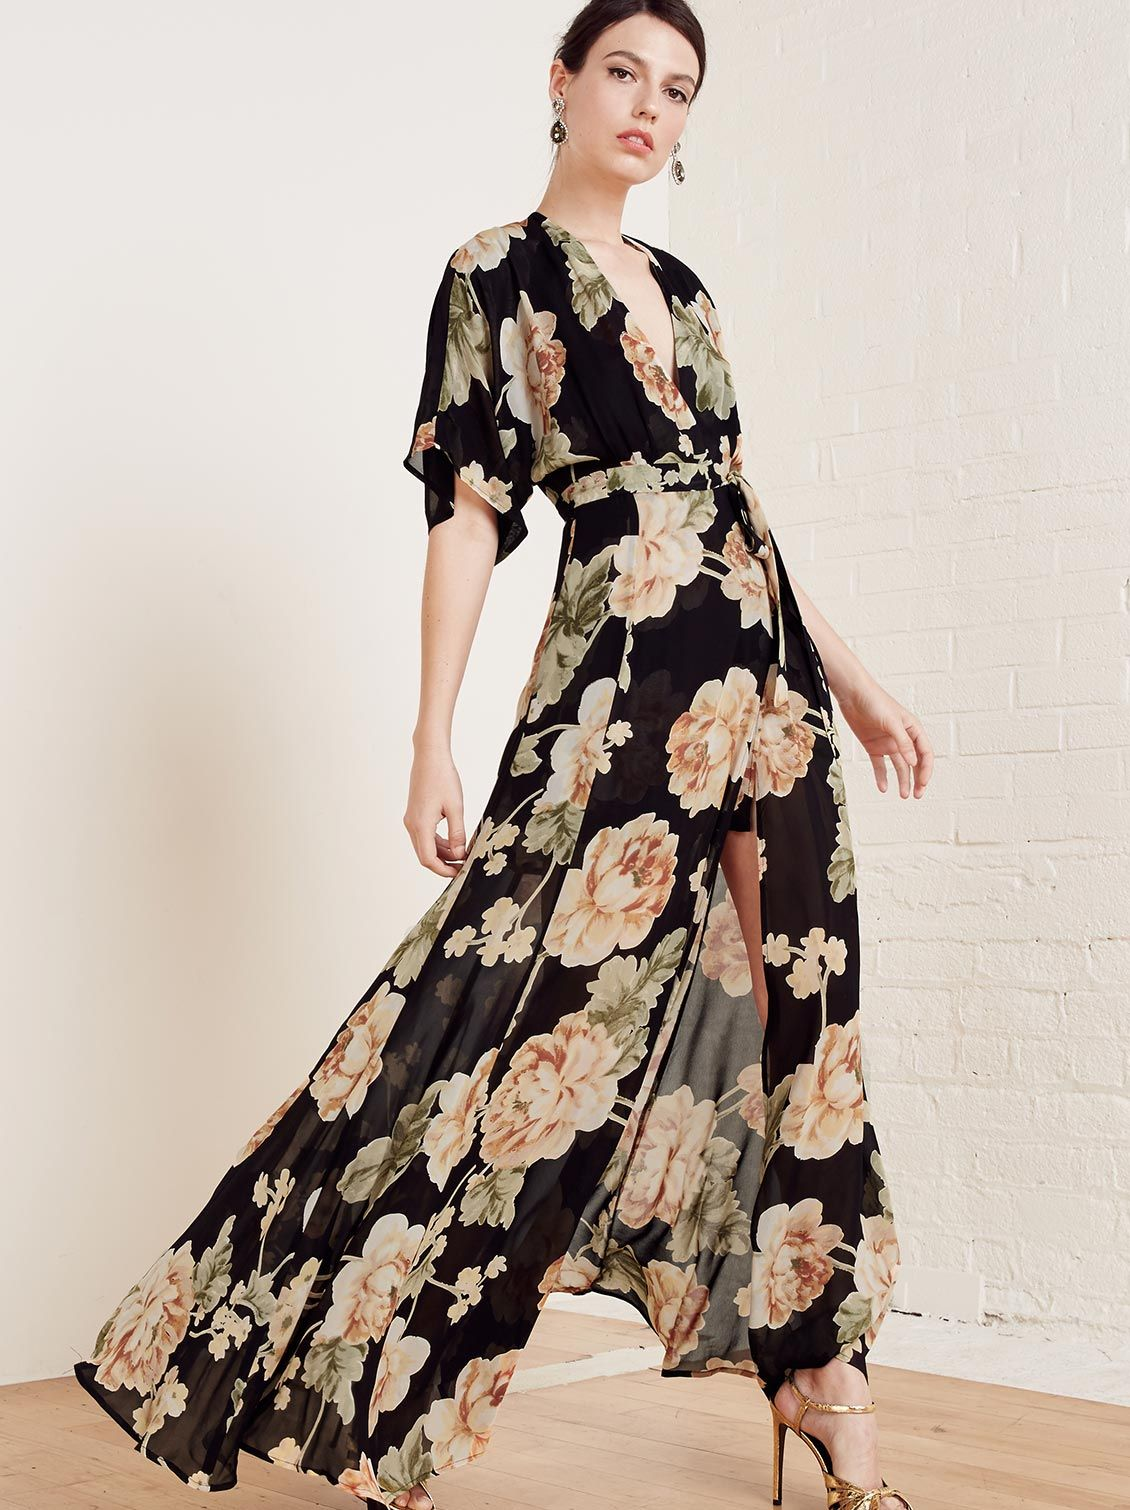 Reformation Welcomes Spring With Delicate Flowers Reformation Welcomes Spring With Delicate Flowers new images